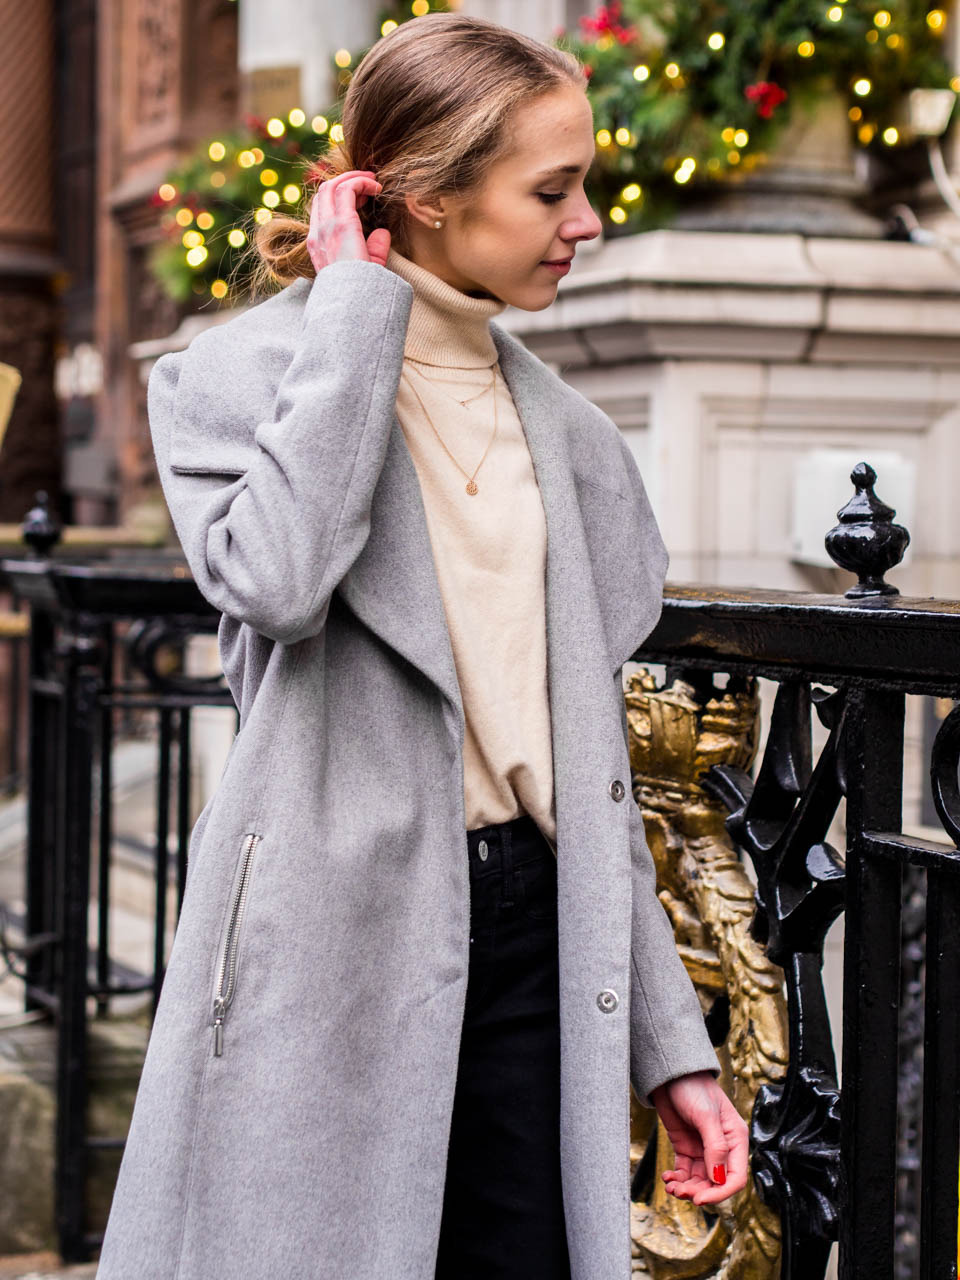 Fashion blogger winter outfit inspiration - Muotibloggaaja, talvimuoti, inspiraatio